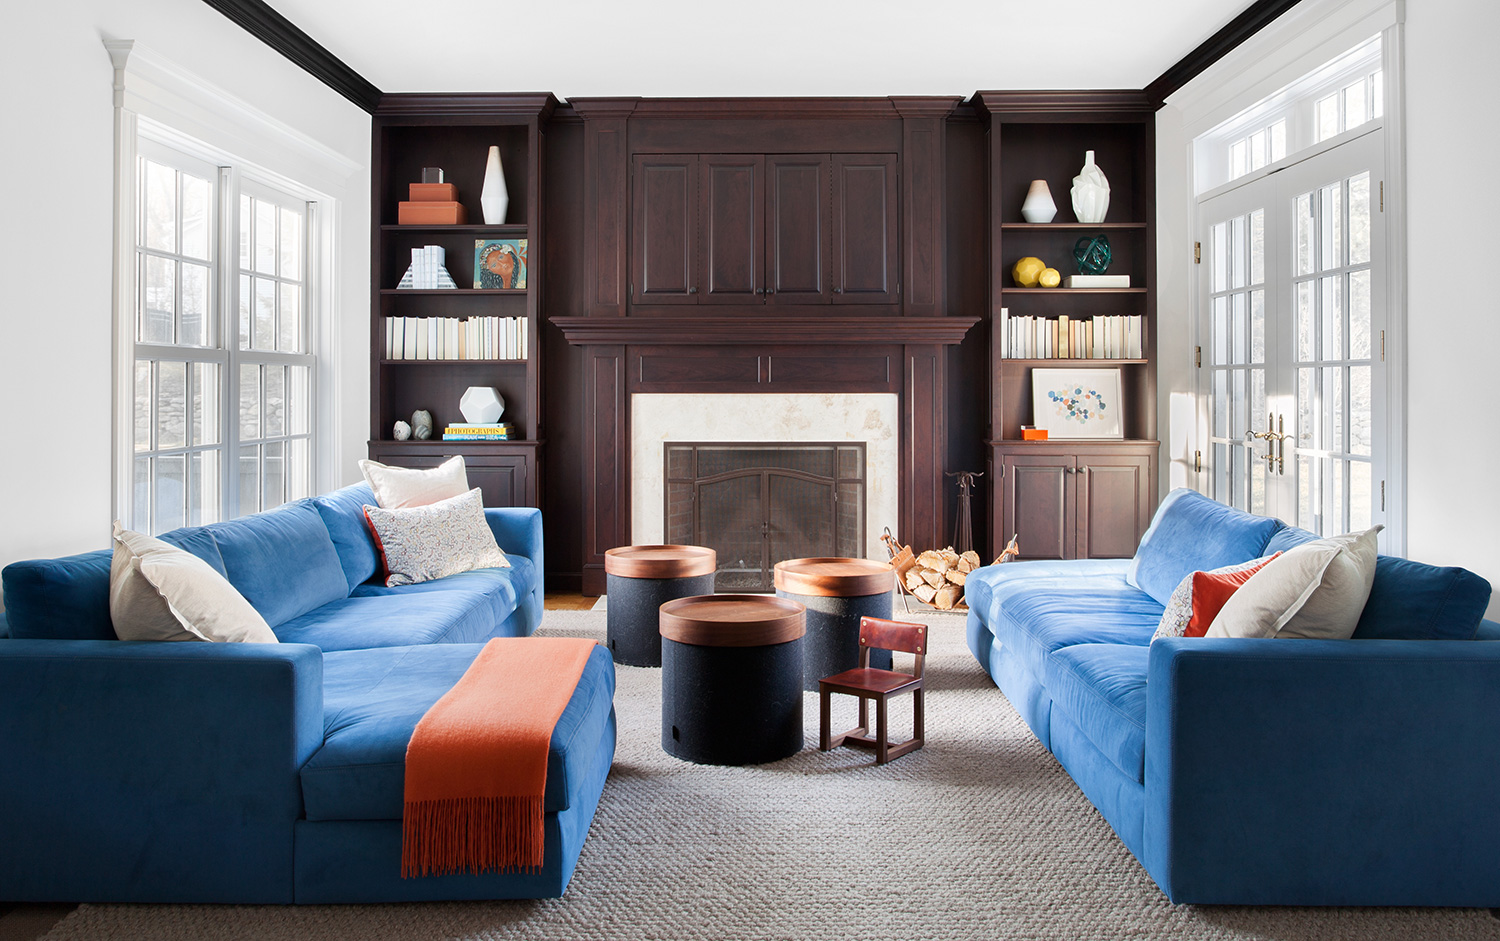 Now That The Family Had E To Make Use Of Large Scale Sofas Were Chosen Provide Lots Comfortable Seating Electric Blue And Autumn Orange